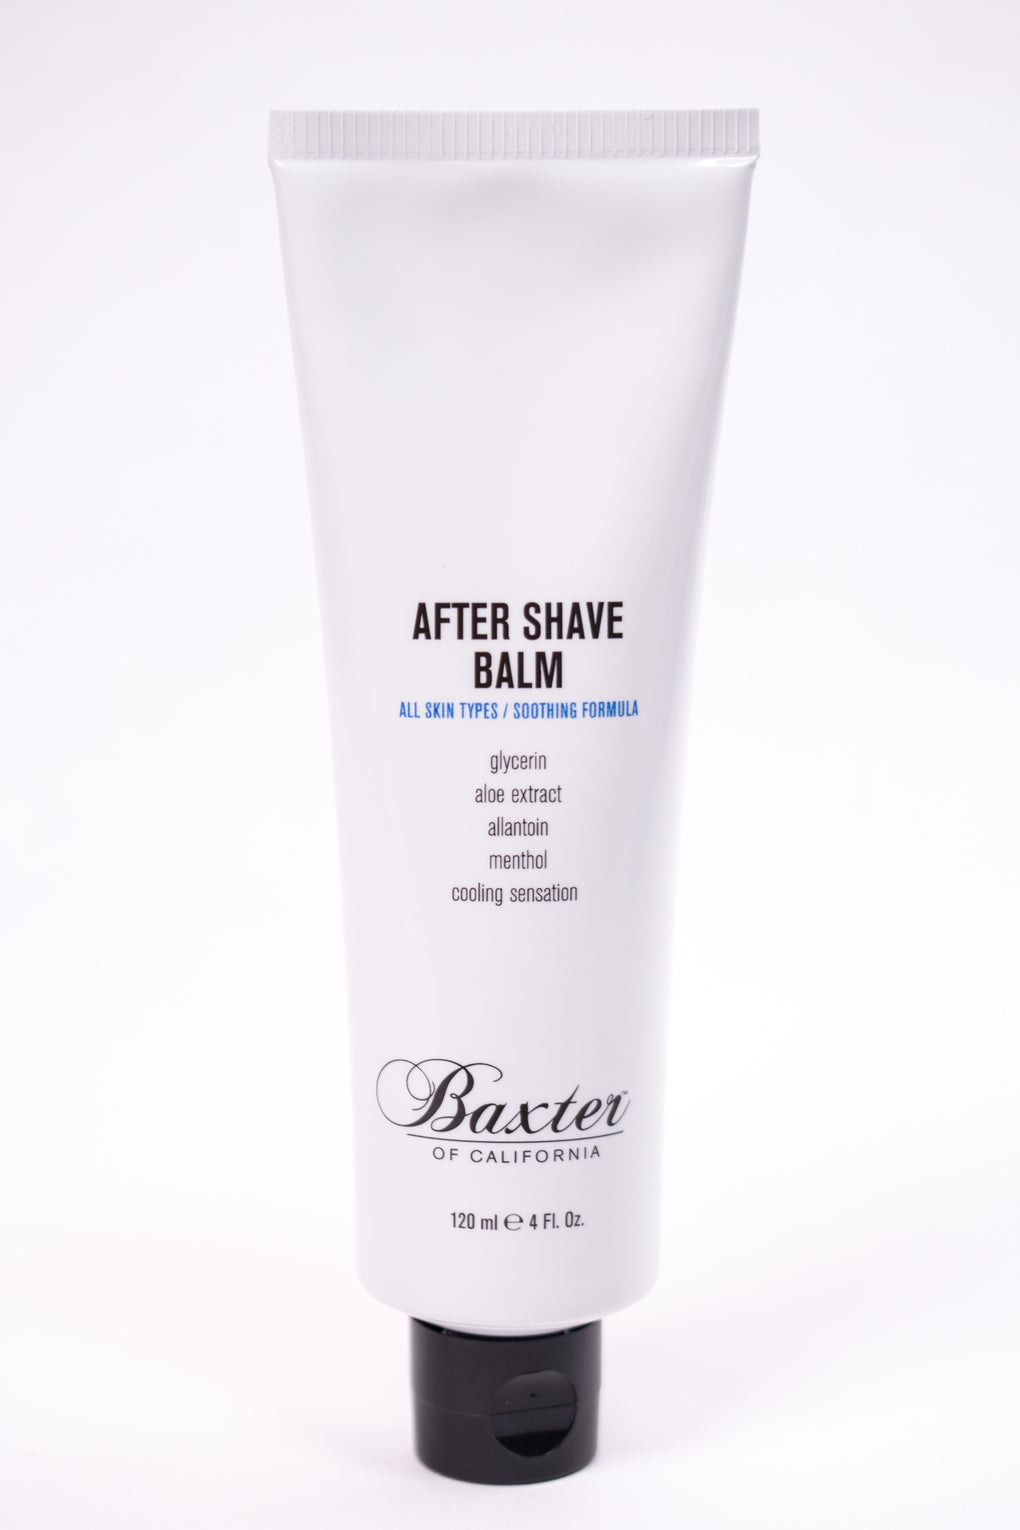 Baxter After Shave Balm at Consigliere